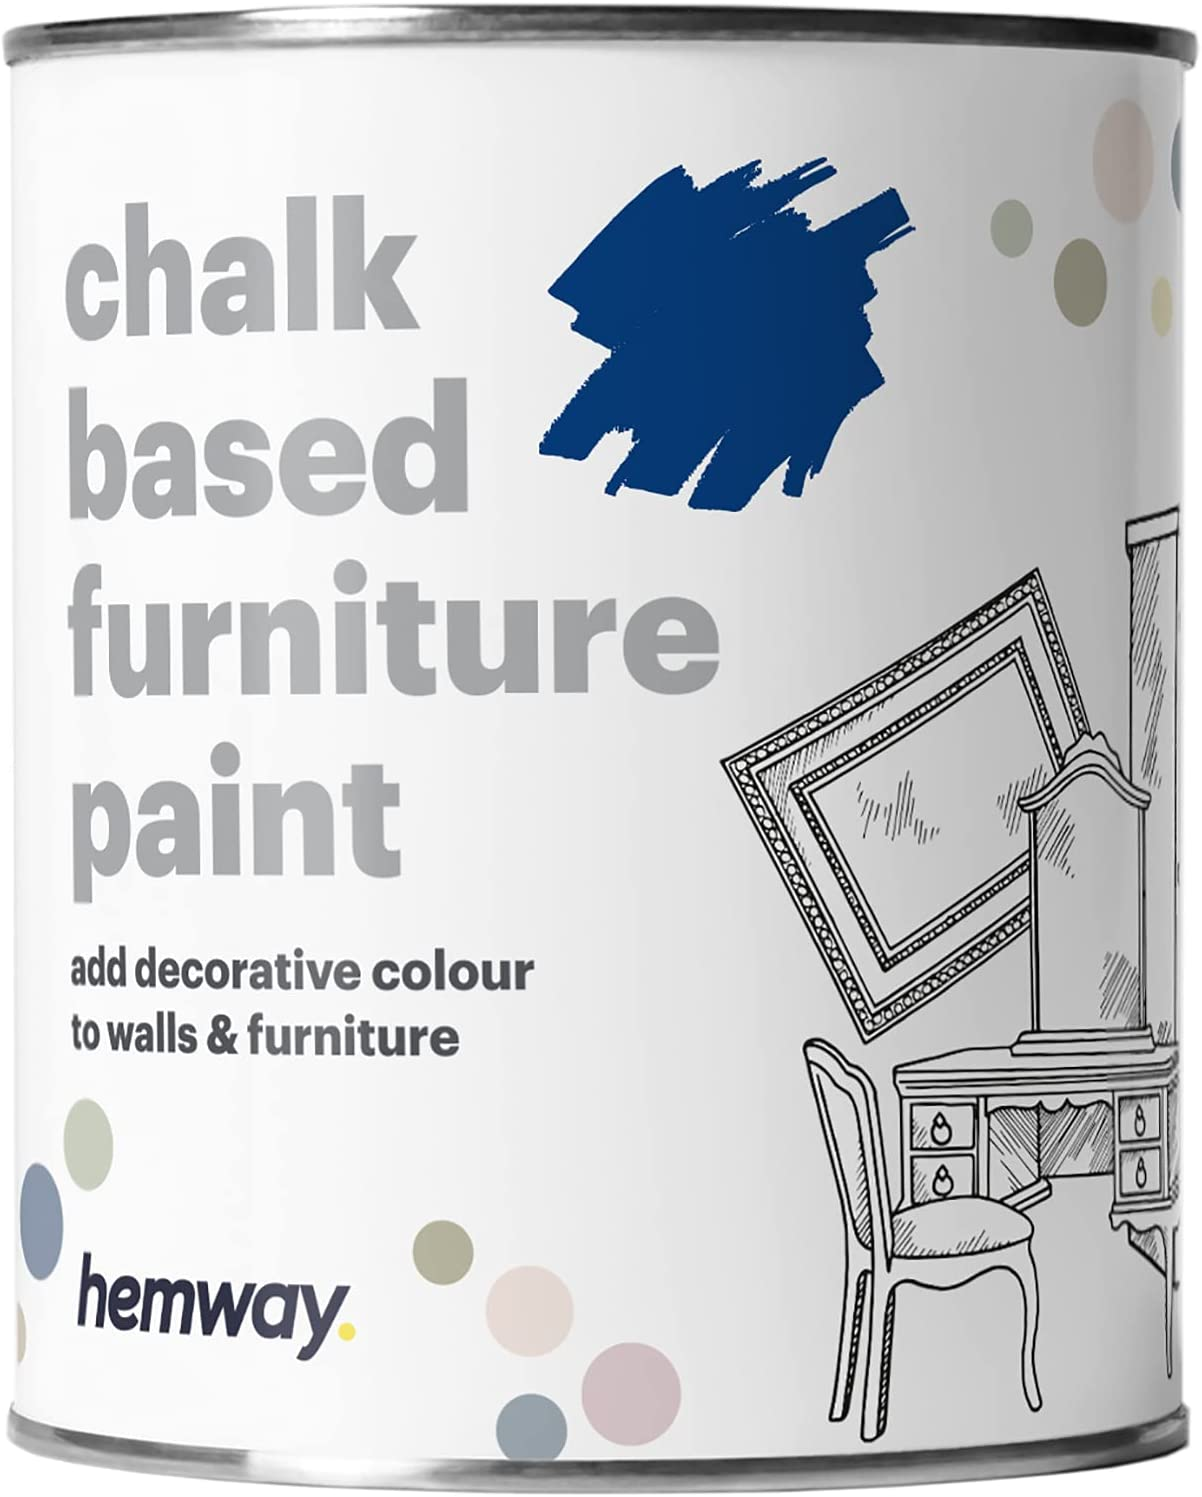 Hemway Royal Blue Chalk Based Furniture Paint Matt Finish Wall and Upcycle DIY Home Improvement 1L / 35oz Shabby Chic Vintage Chalky (50+ Colours Available)